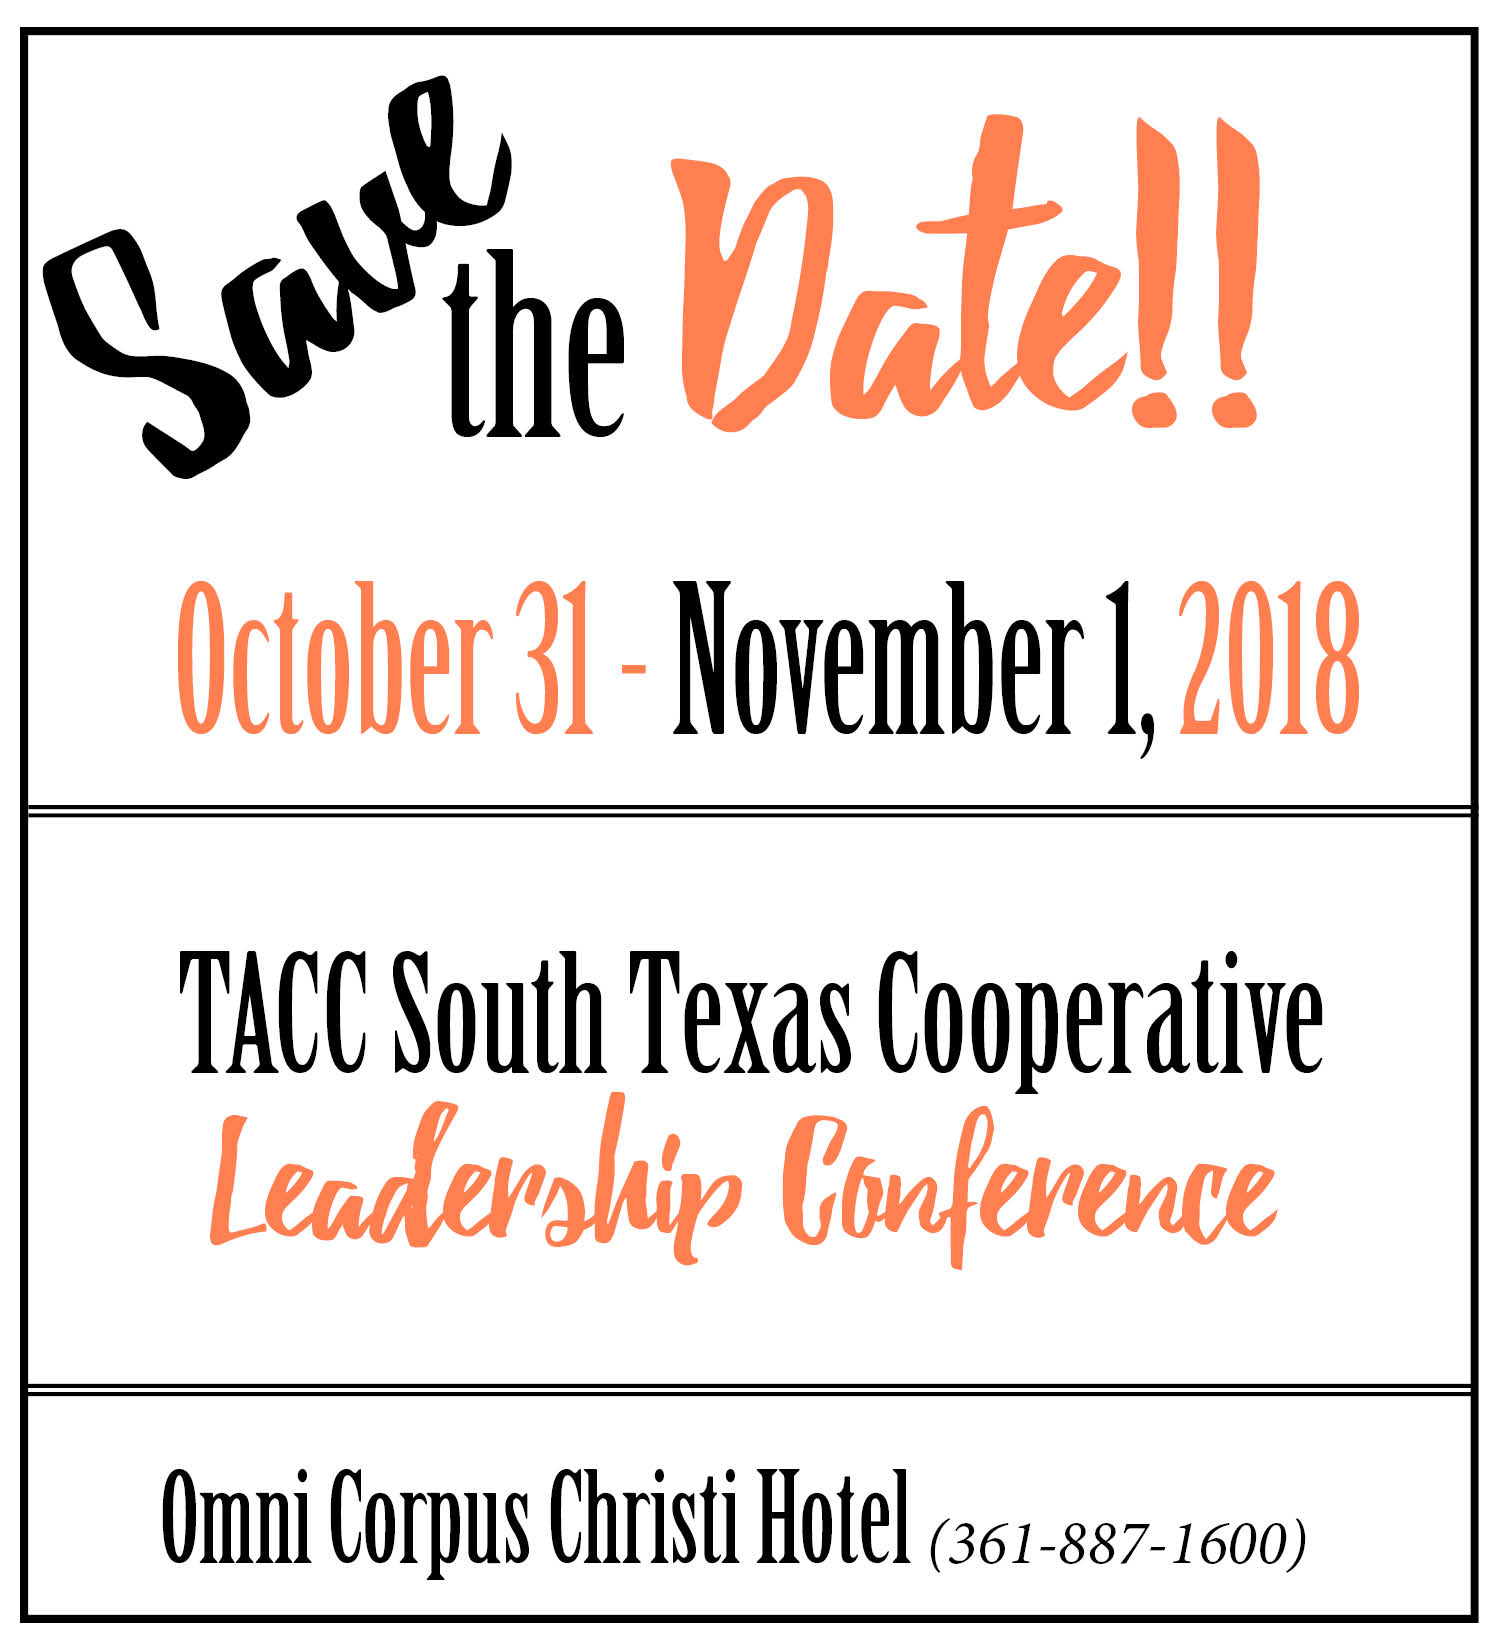 south texas leadership center TACC South Texas Cooperative Leadership Conference | Texas ...